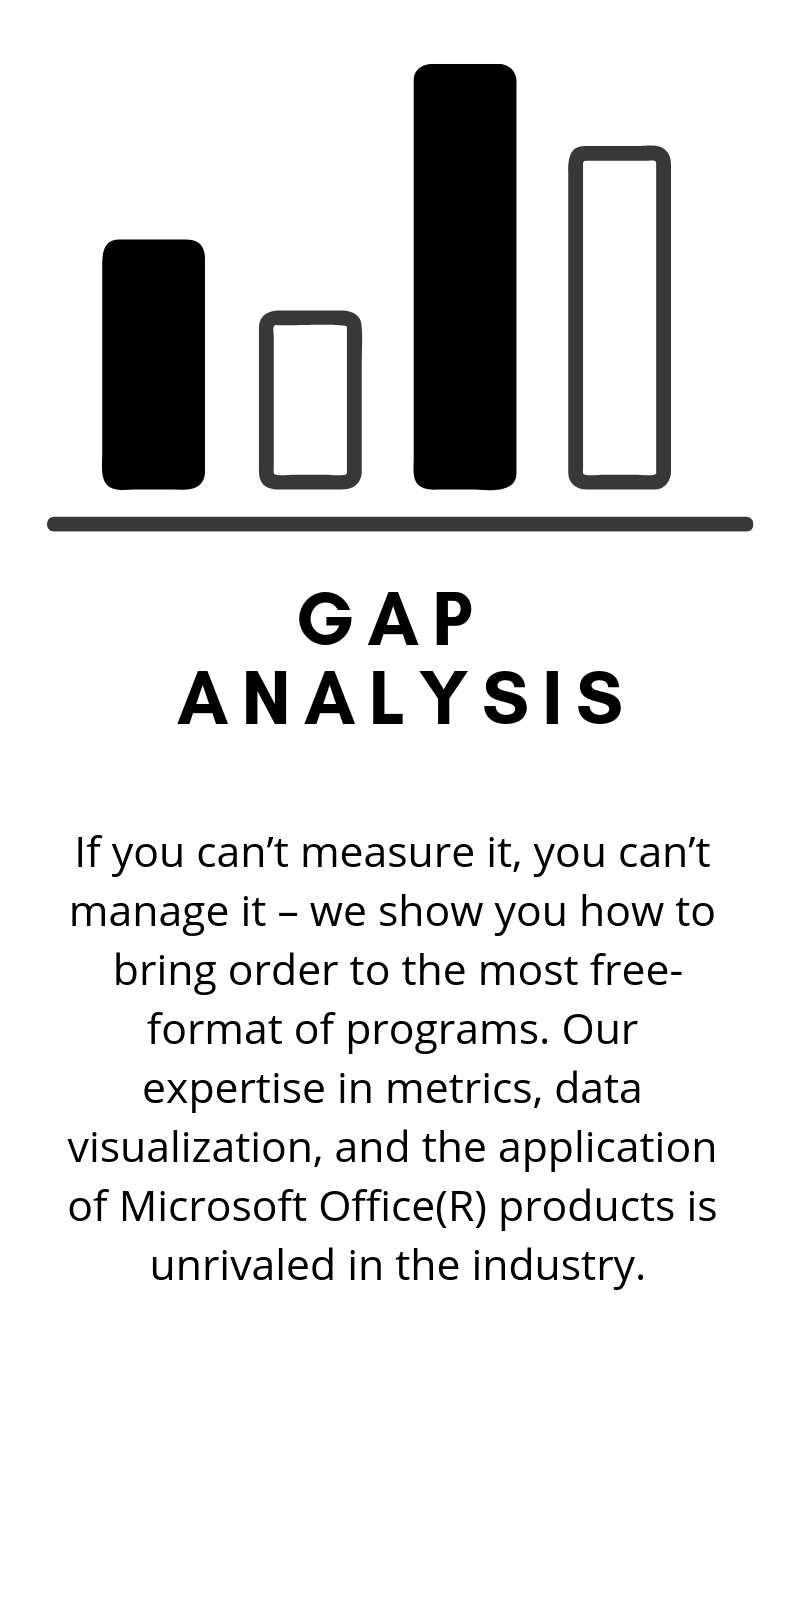 gap-analysis-performance-improvement.png